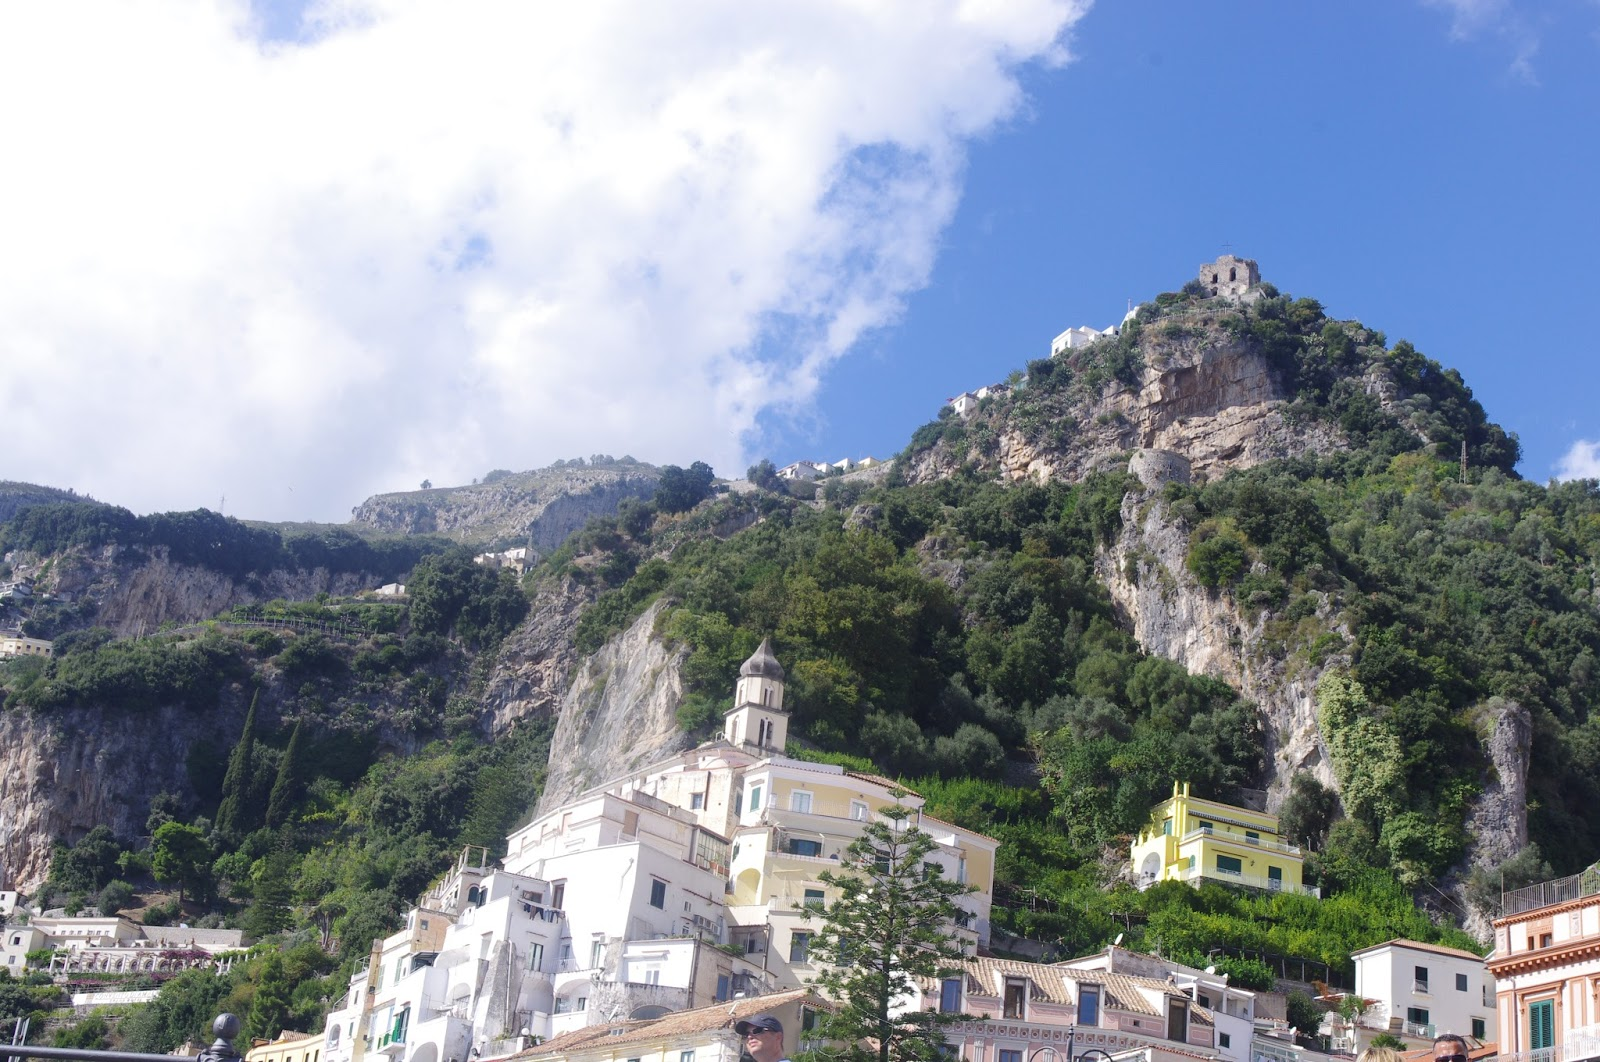 View of cliffs above Positano